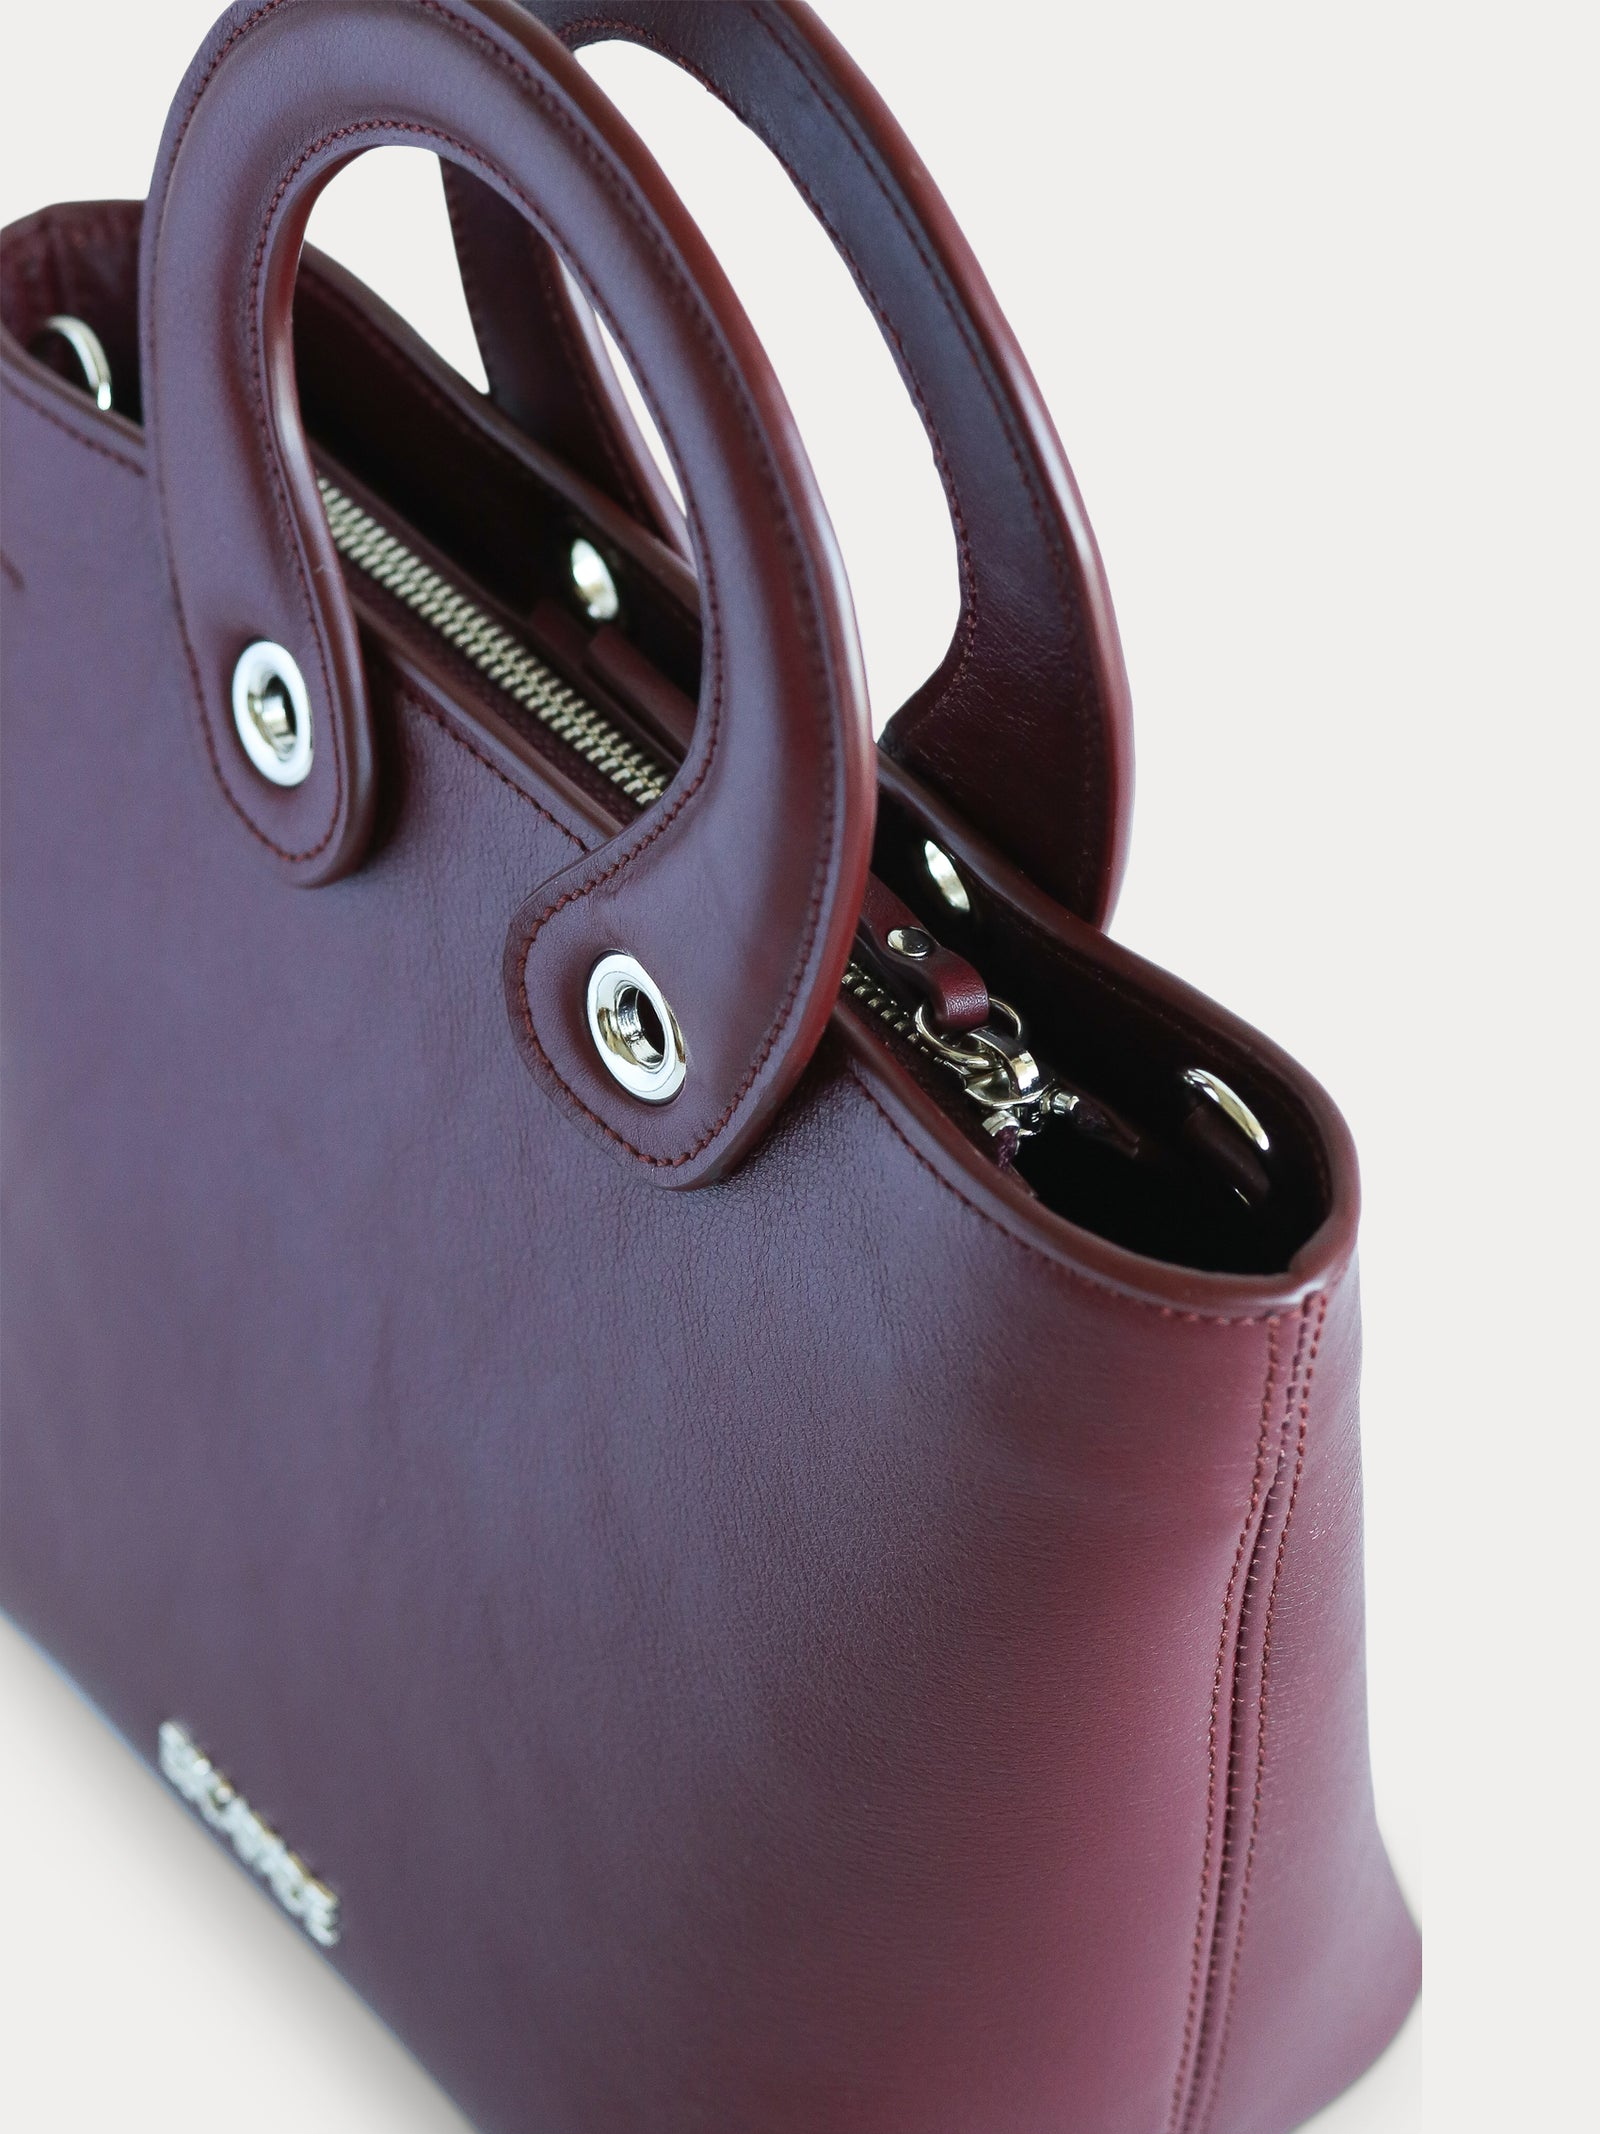 handmade burgundy leather mini tote bag for women